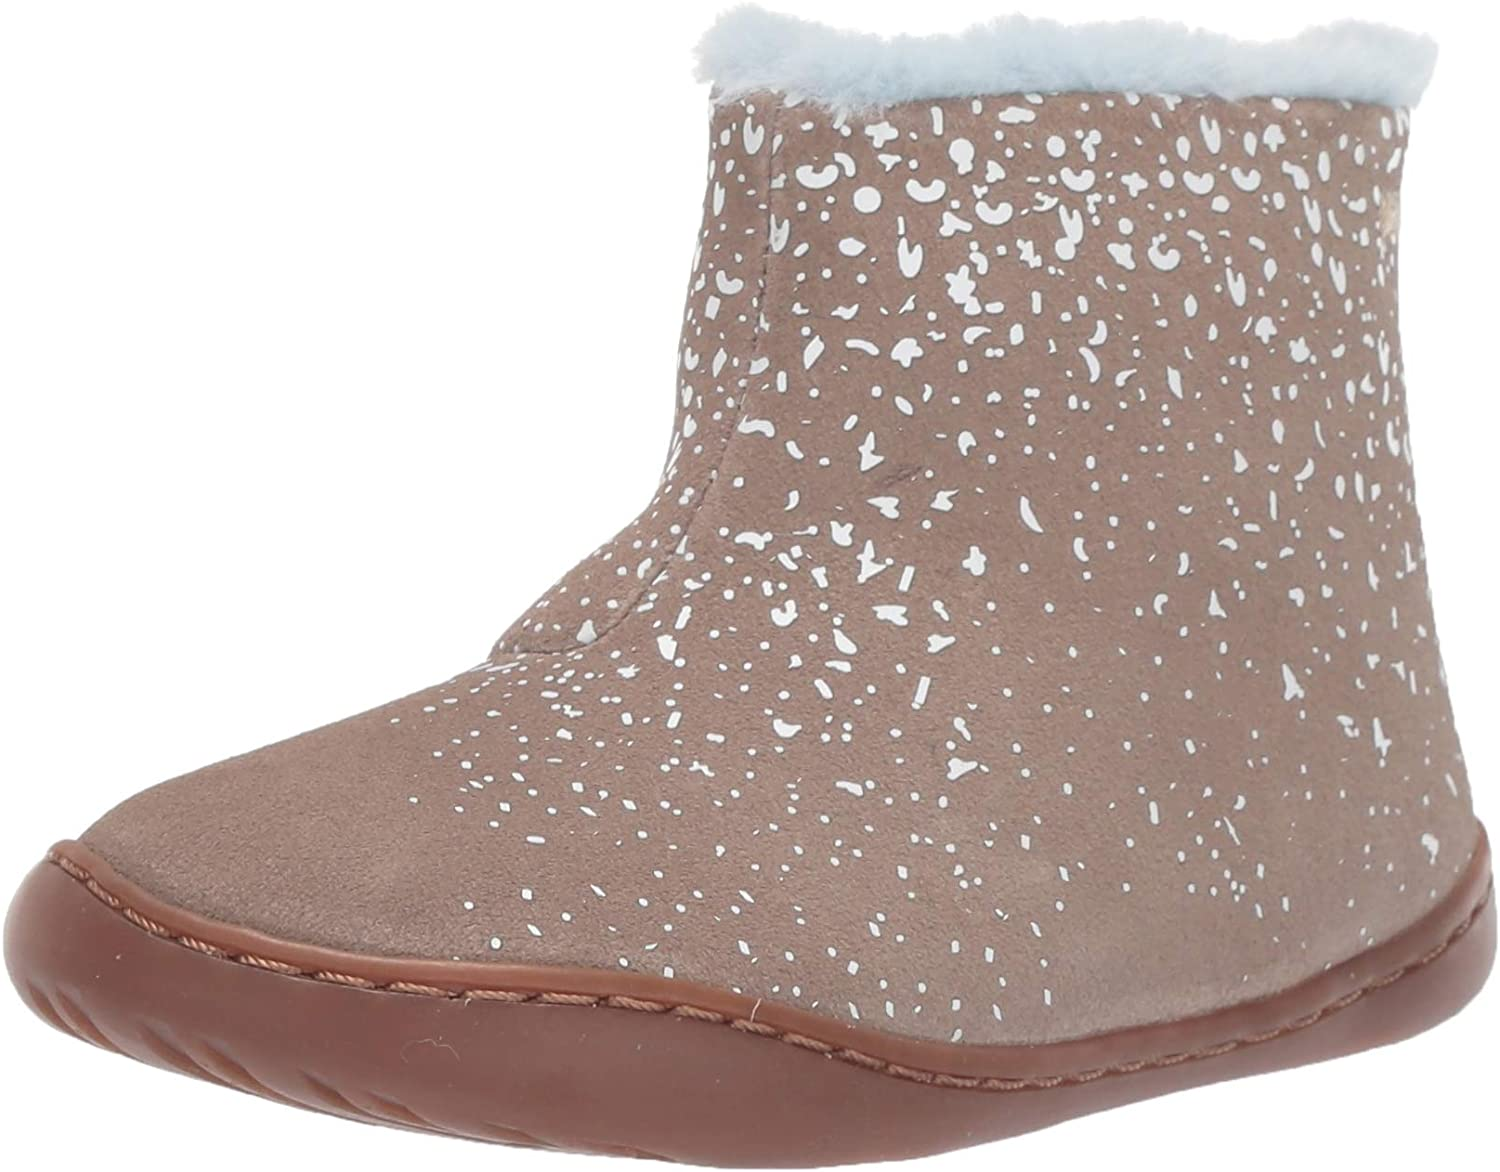 Camper Unisex-Child TWS Fw Boot Ankle Industry No. Luxury goods 1